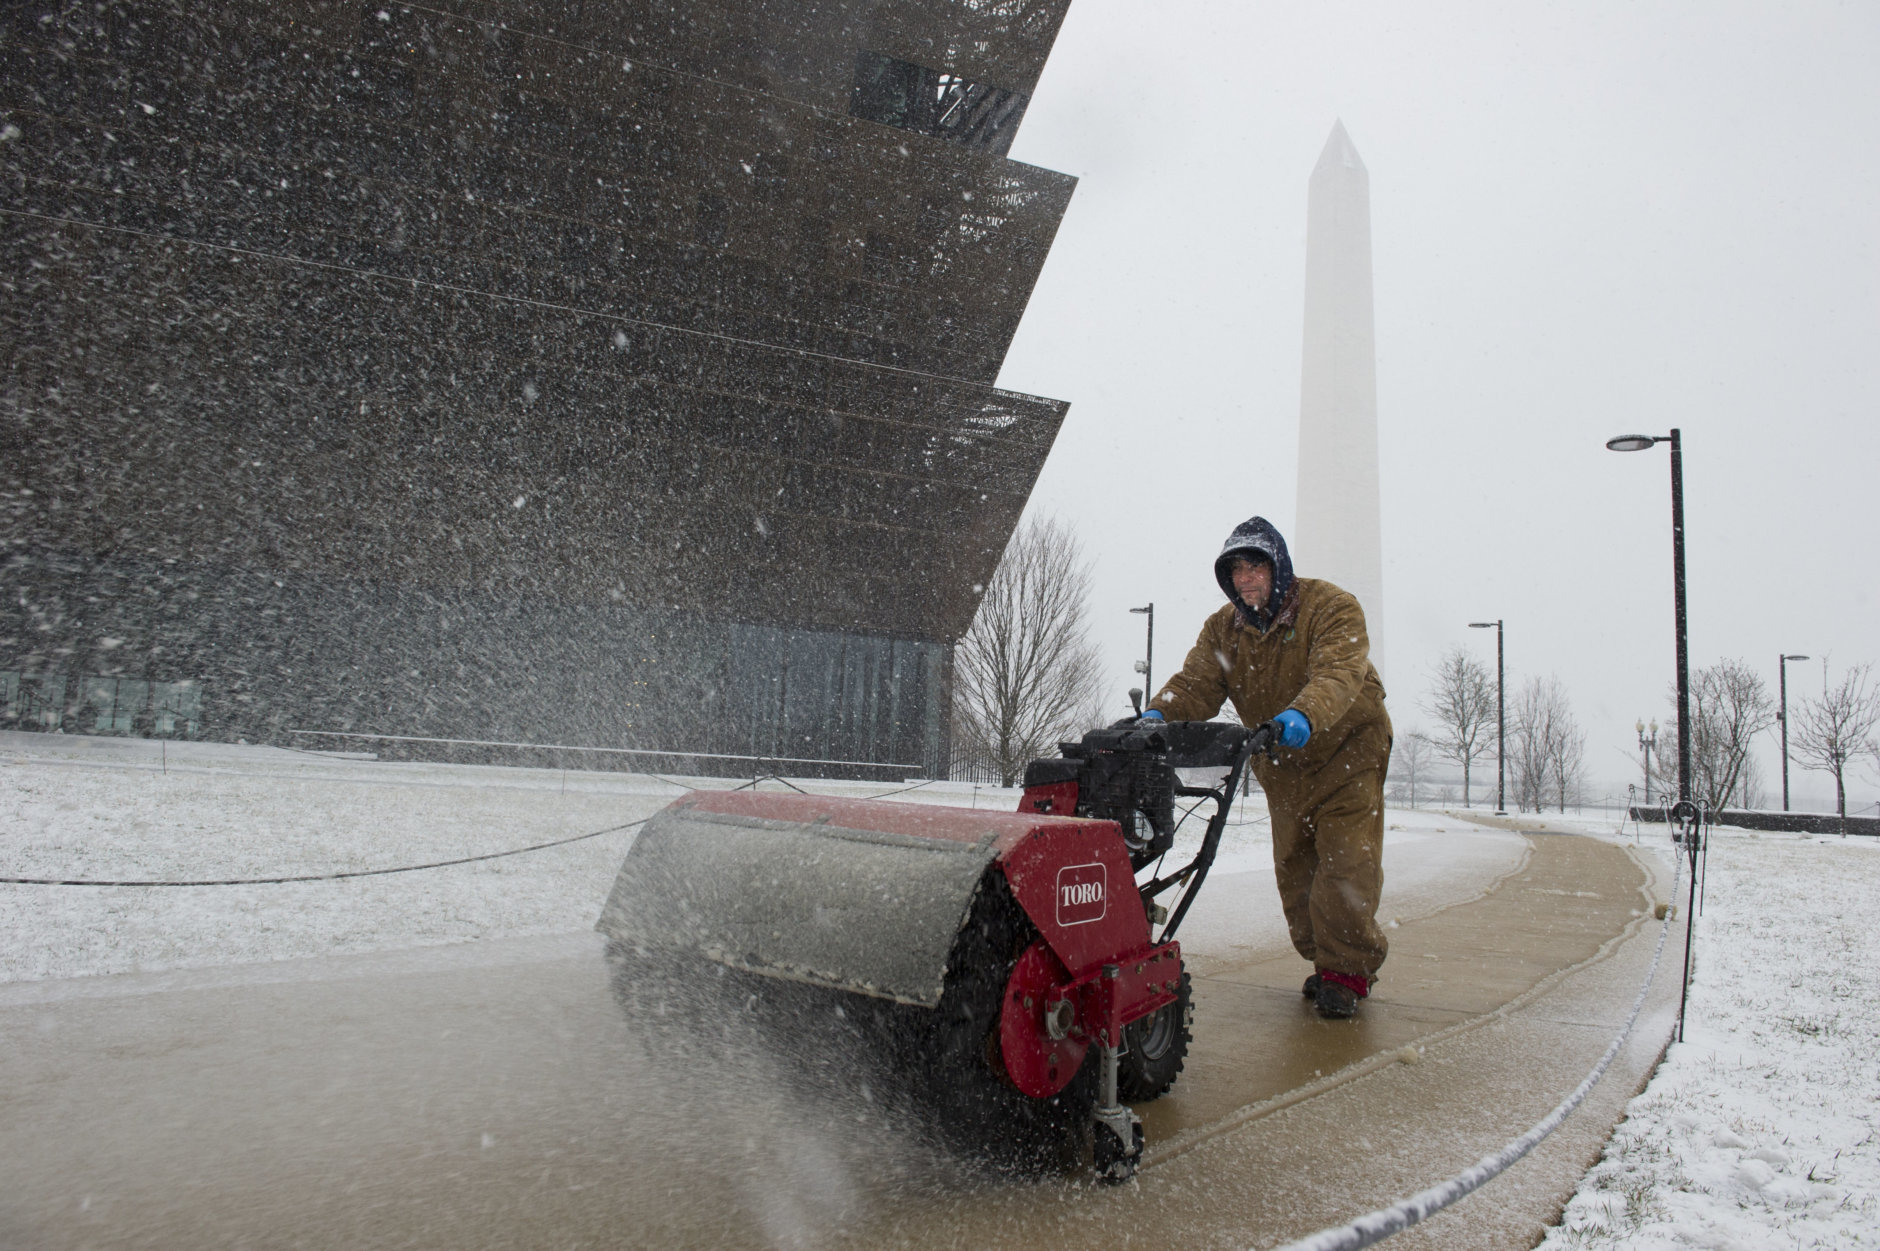 The Washington Monument is seen in the background as a worker clears snow from a sidewalk at the National Museum of African American History and Culture during a Spring snowstorm in Washington, Wednesday, March 21, 2018. (AP Photo/Cliff Owen)